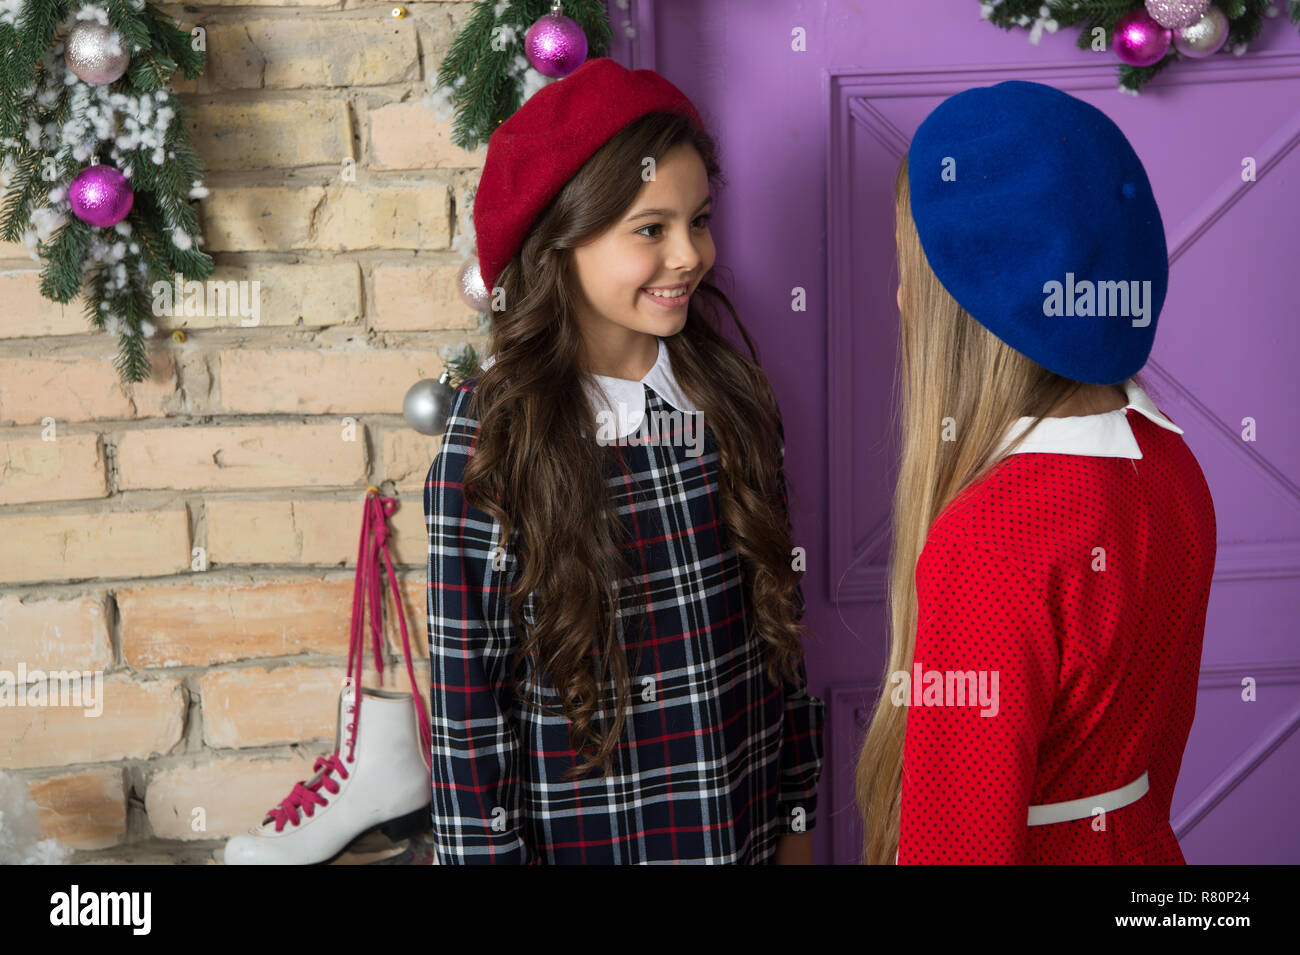 Winter gossips concept. Lets have fun and celebrate christmas. Christmas tips for kids. Children cute girls ready meet christmas and new year. Girls small kids front festive christmas decorations. - Stock Image